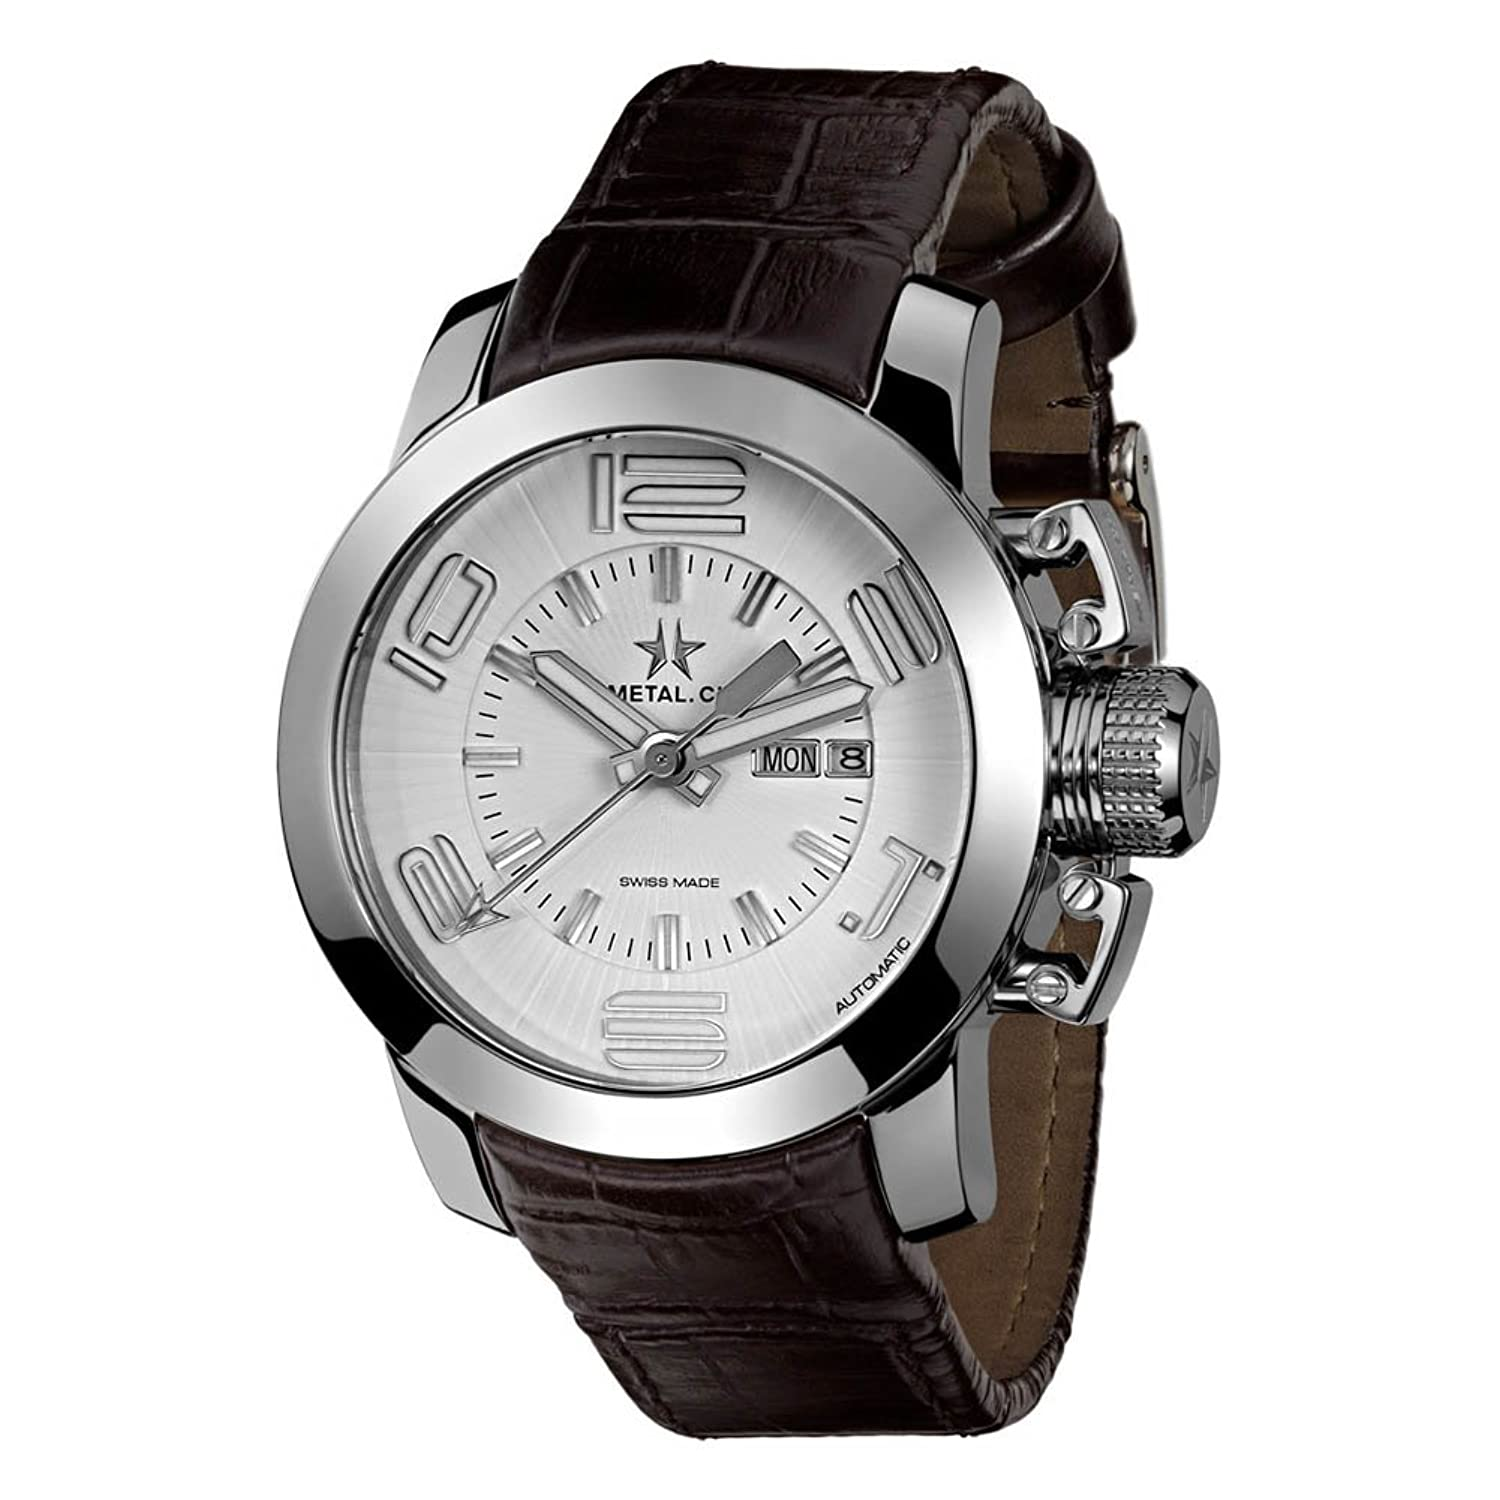 METAL Chronometrie Swiss Made Uhr - GRAND silber 44mm